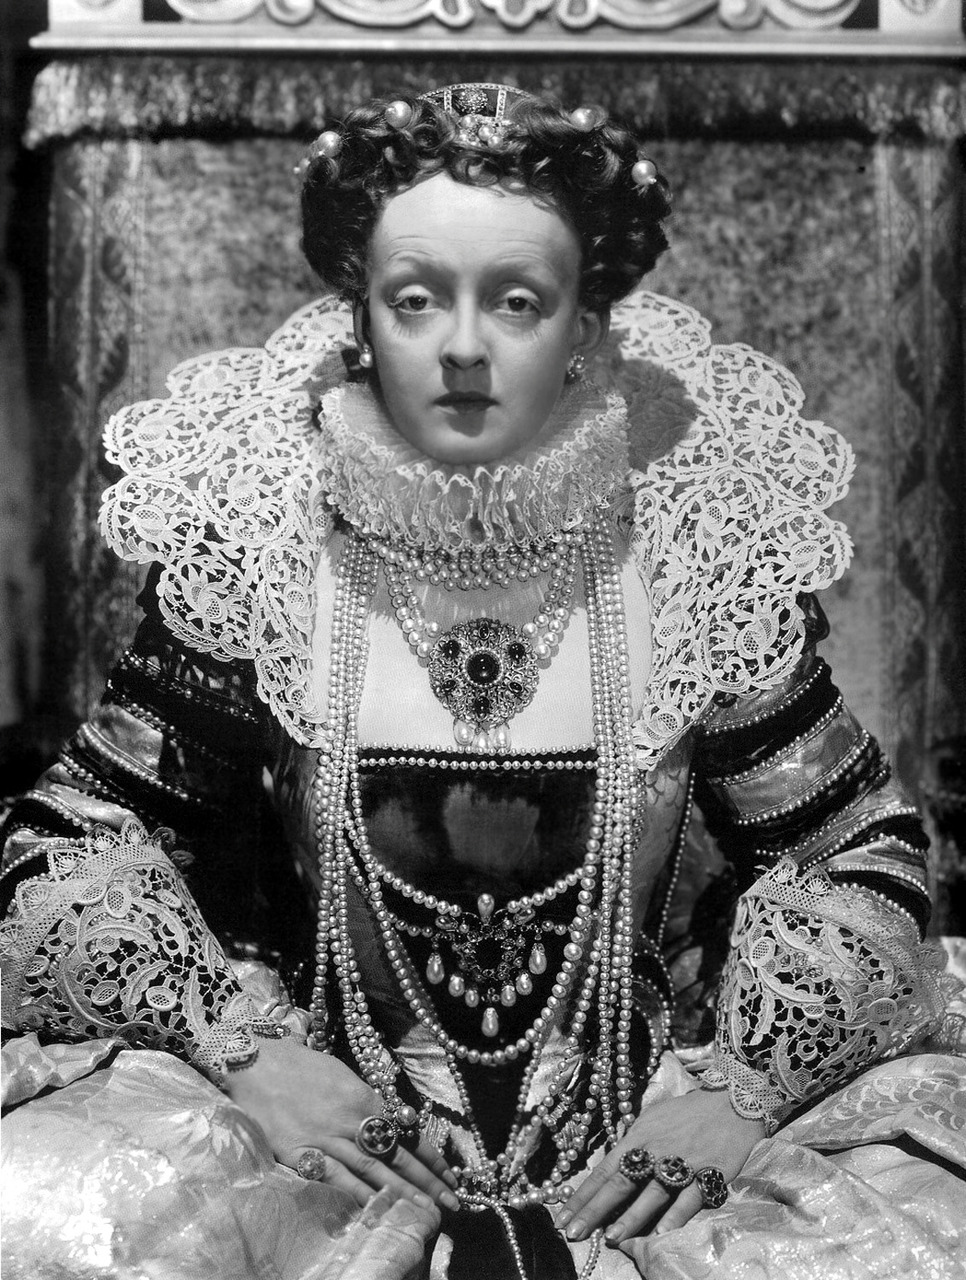 Bette Davis as Queen Elizabeth I